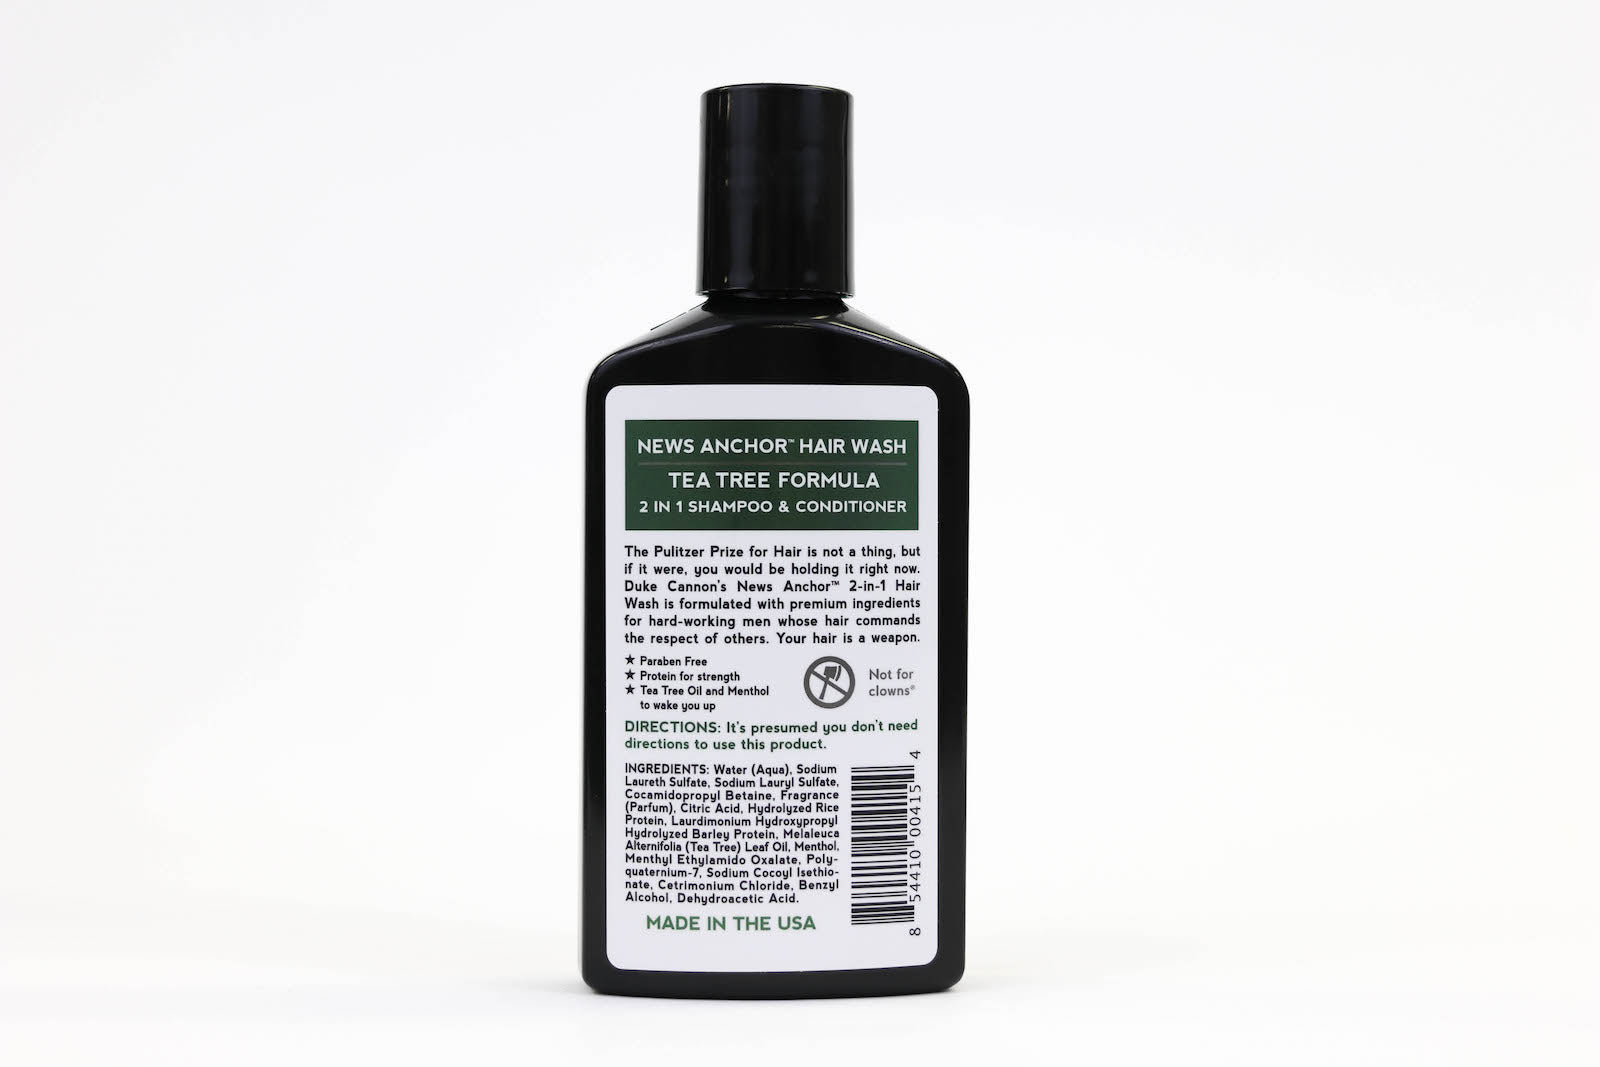 News Anchor 2-in-1 Hair Wash - Tea Tree Formula